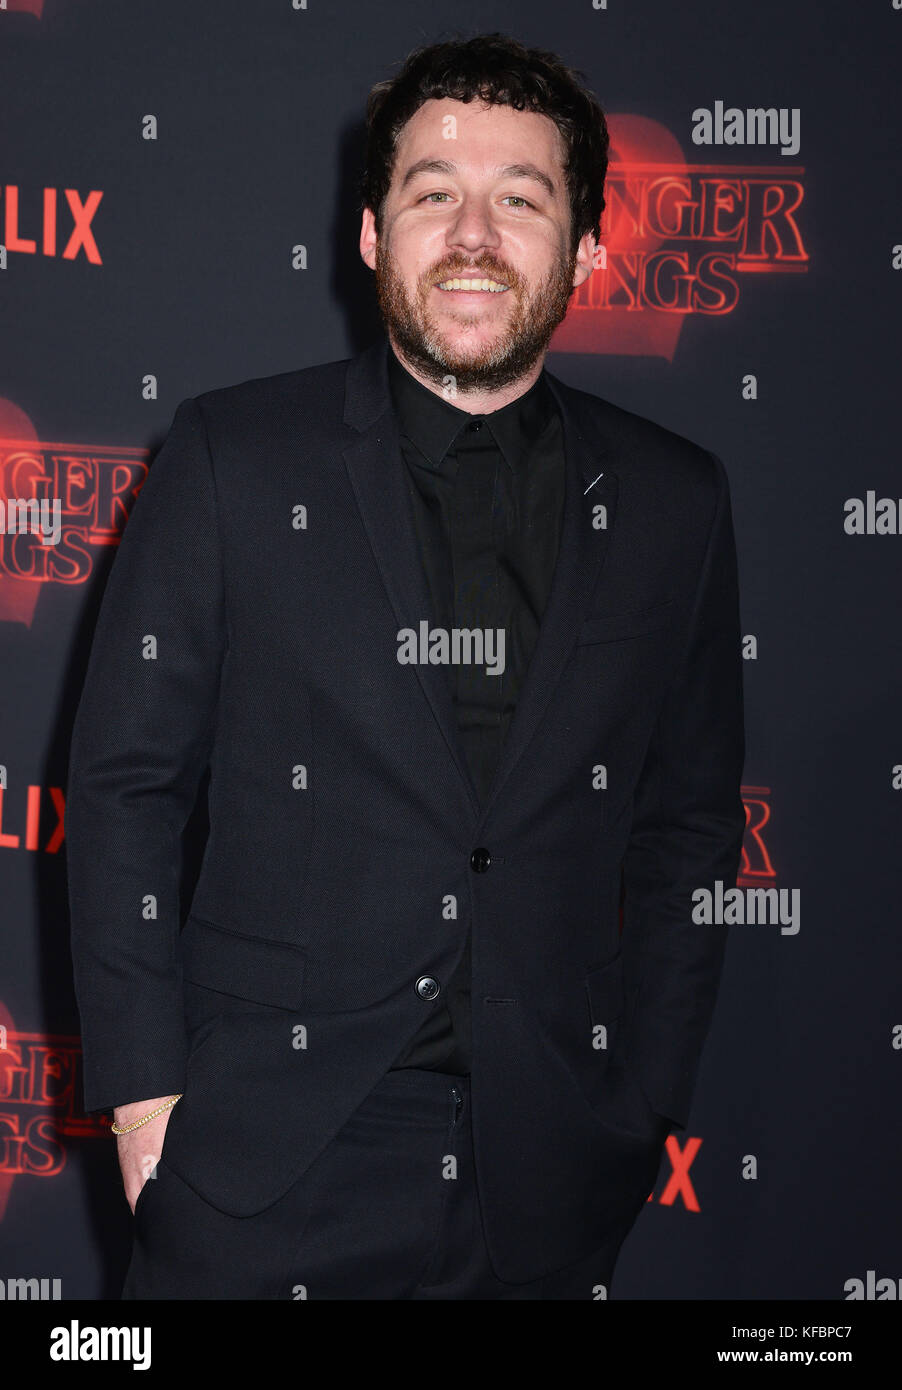 Los Angeles, USA. 26th Oct, 2017. Kyle Dixon  arrives at the Premiere Of Netflix's 'Stranger Things' - Stock Image